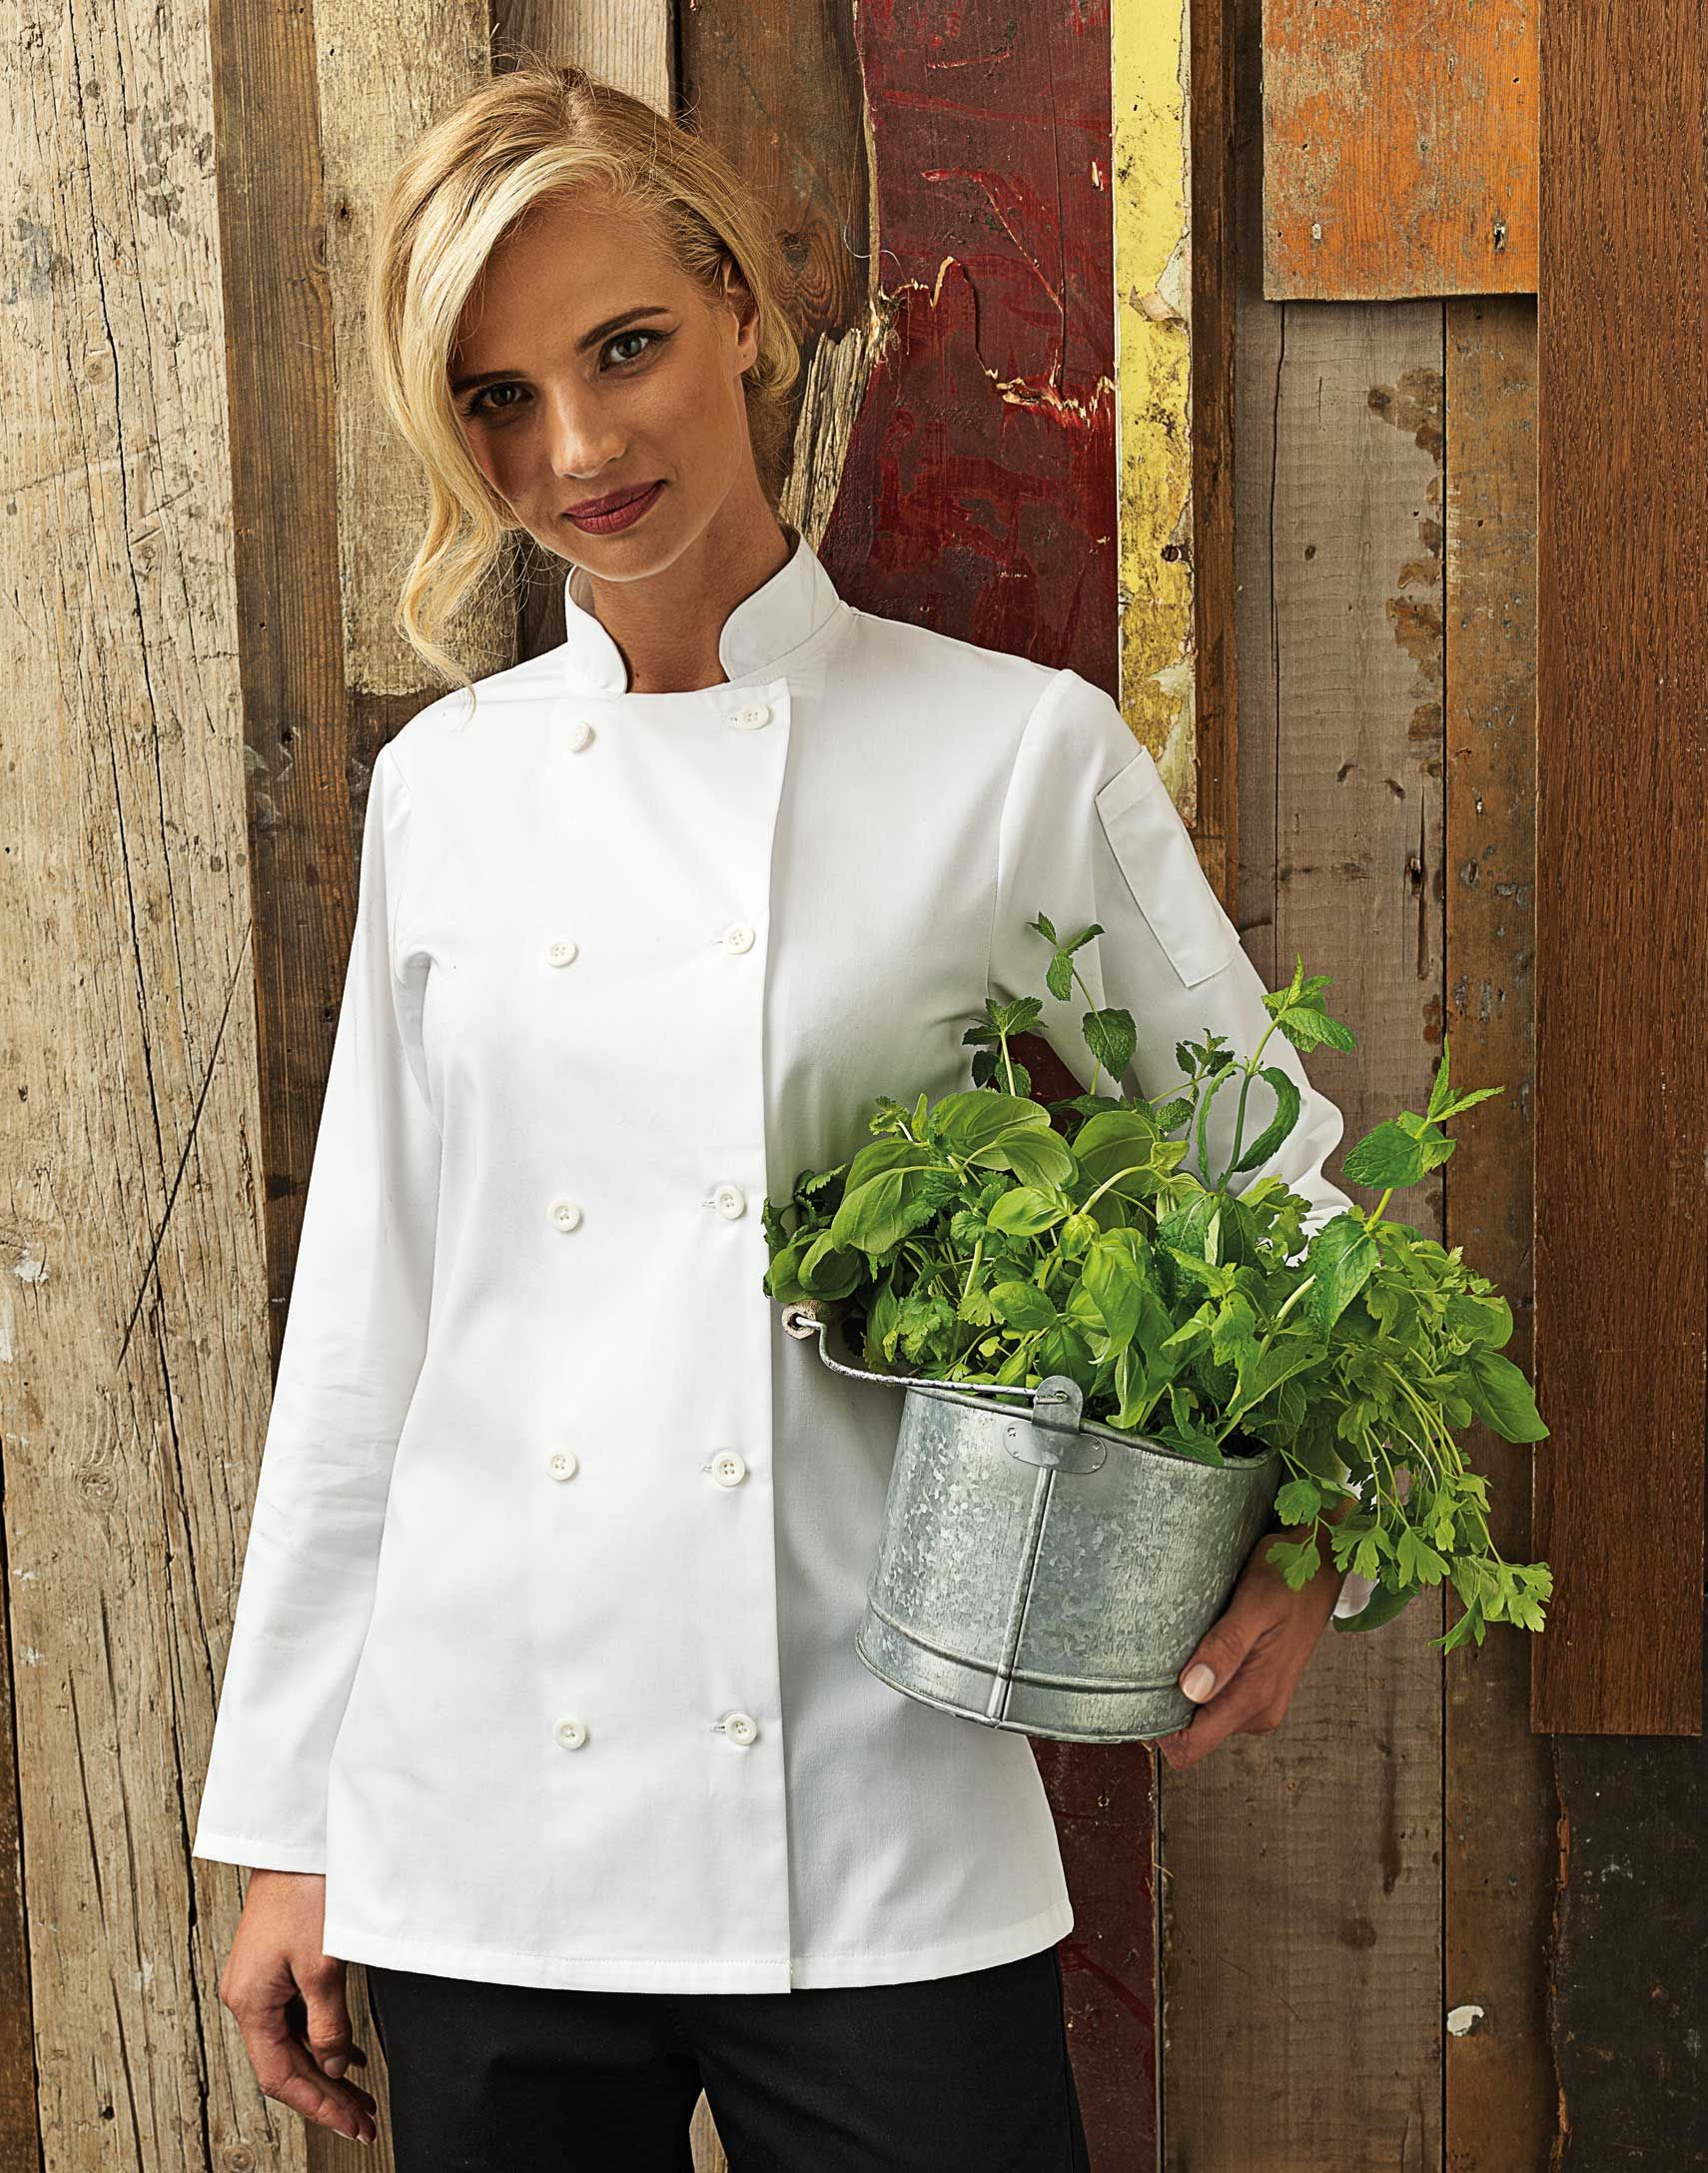 d9378749a1c0f Women's PR671 Long Sleeve Chef Jacket with fitted styling around the upper  arm, waist and bust area in a wrap over style. #chef #women #fashion # chefwear ...